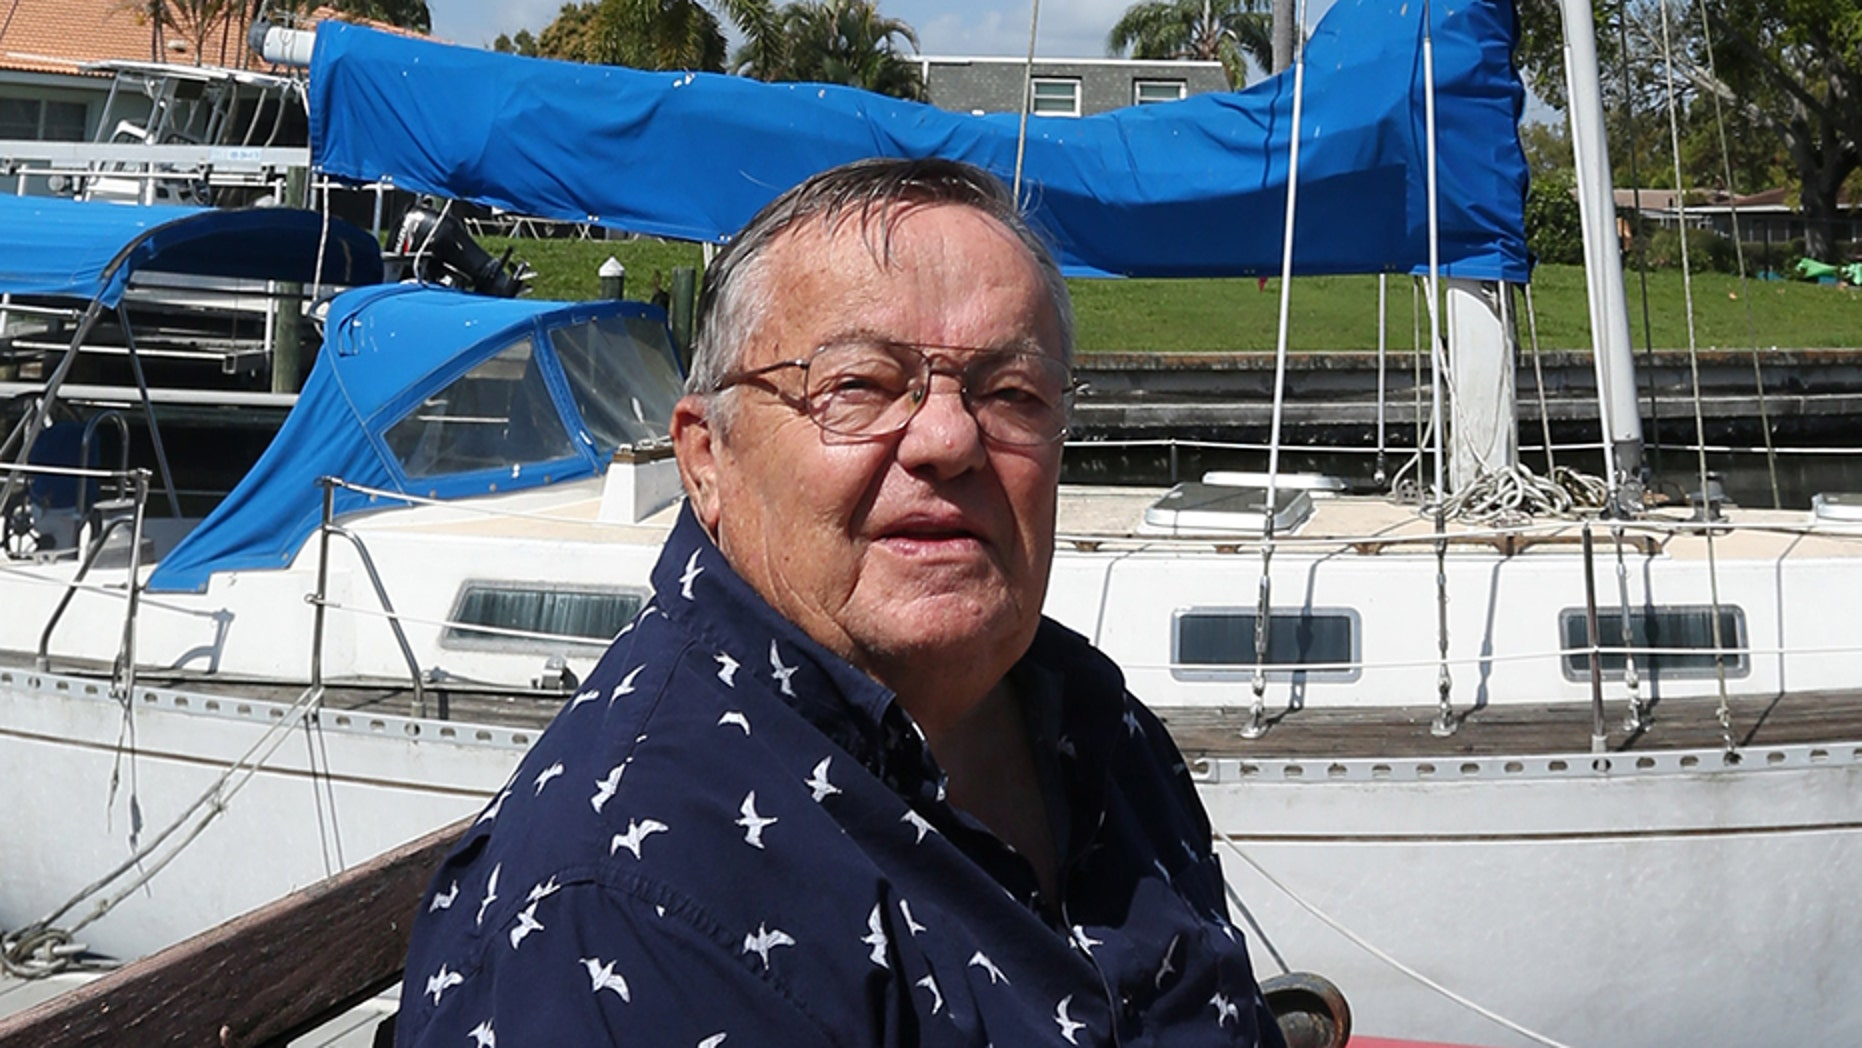 After reading the Tampa Bay Times story about the couple who's boat sank in John's Pass, Reinecke sold his boat to the couple for $1.00.